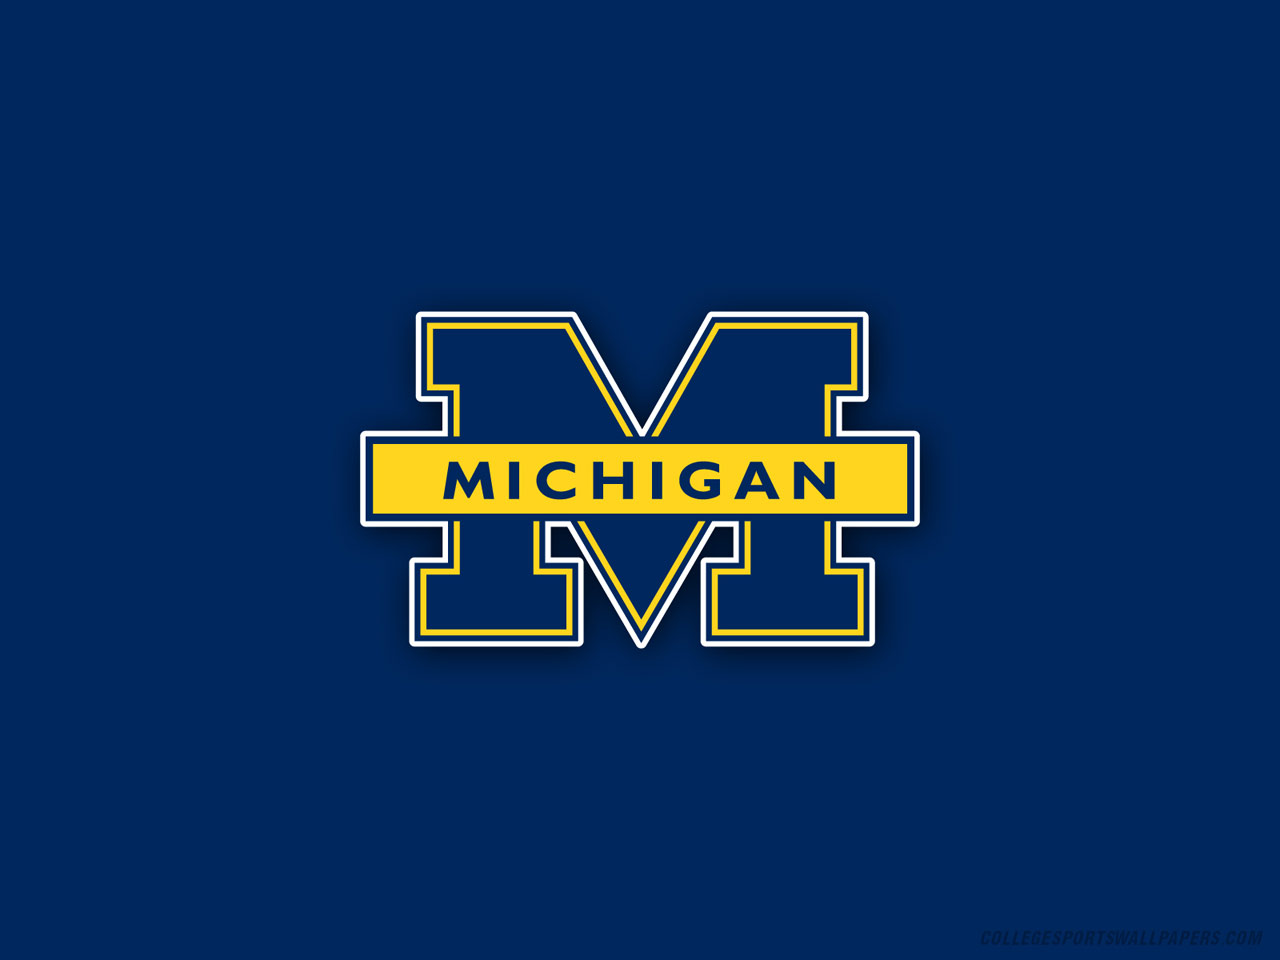 Free Michigan Wallpaper